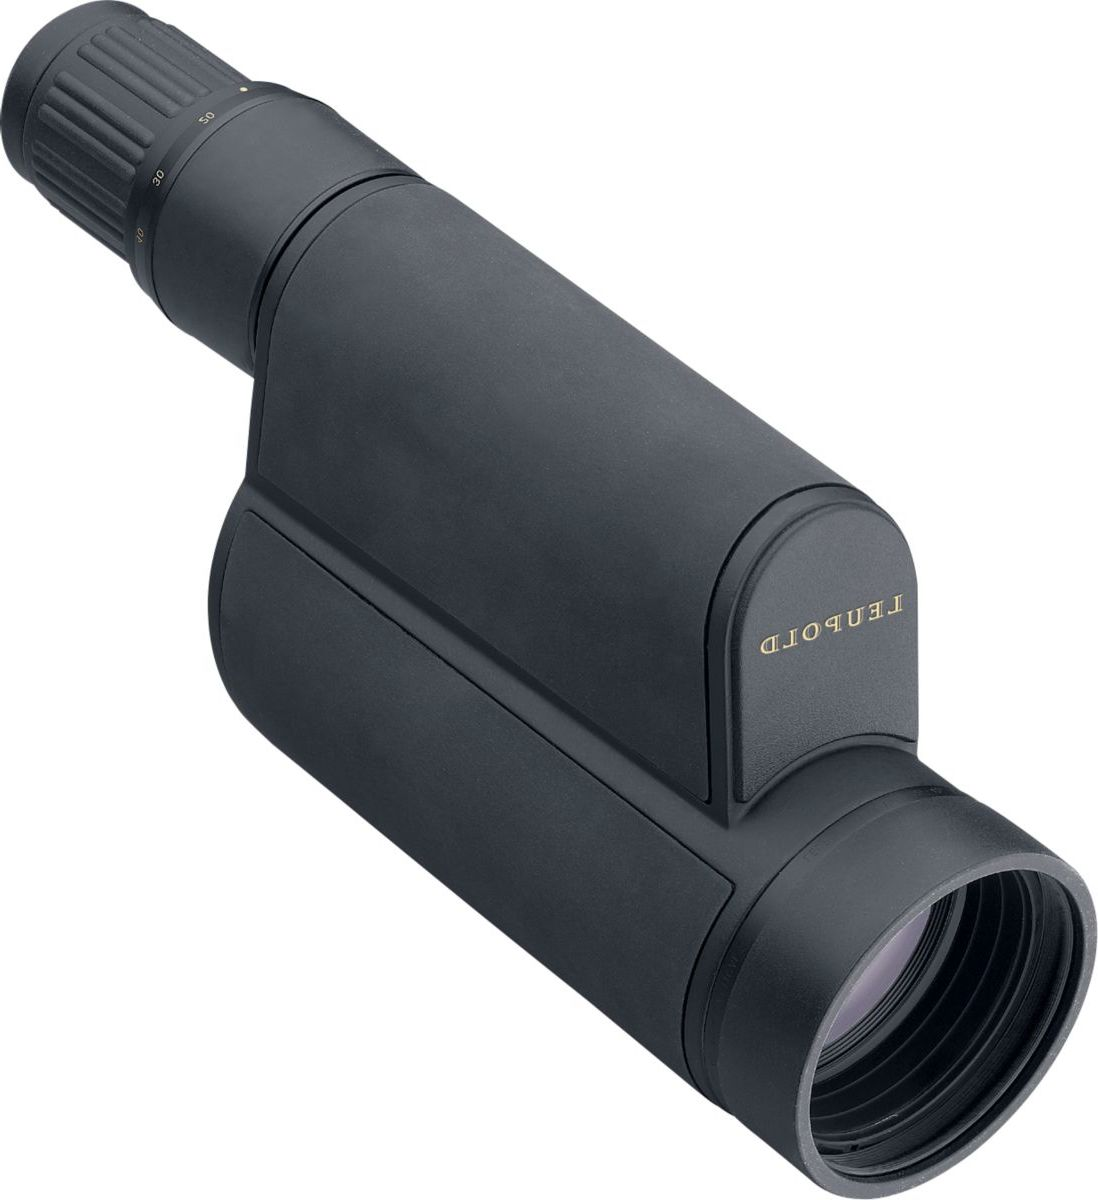 Leupold® Mark 4 Tactical Spotting Scope